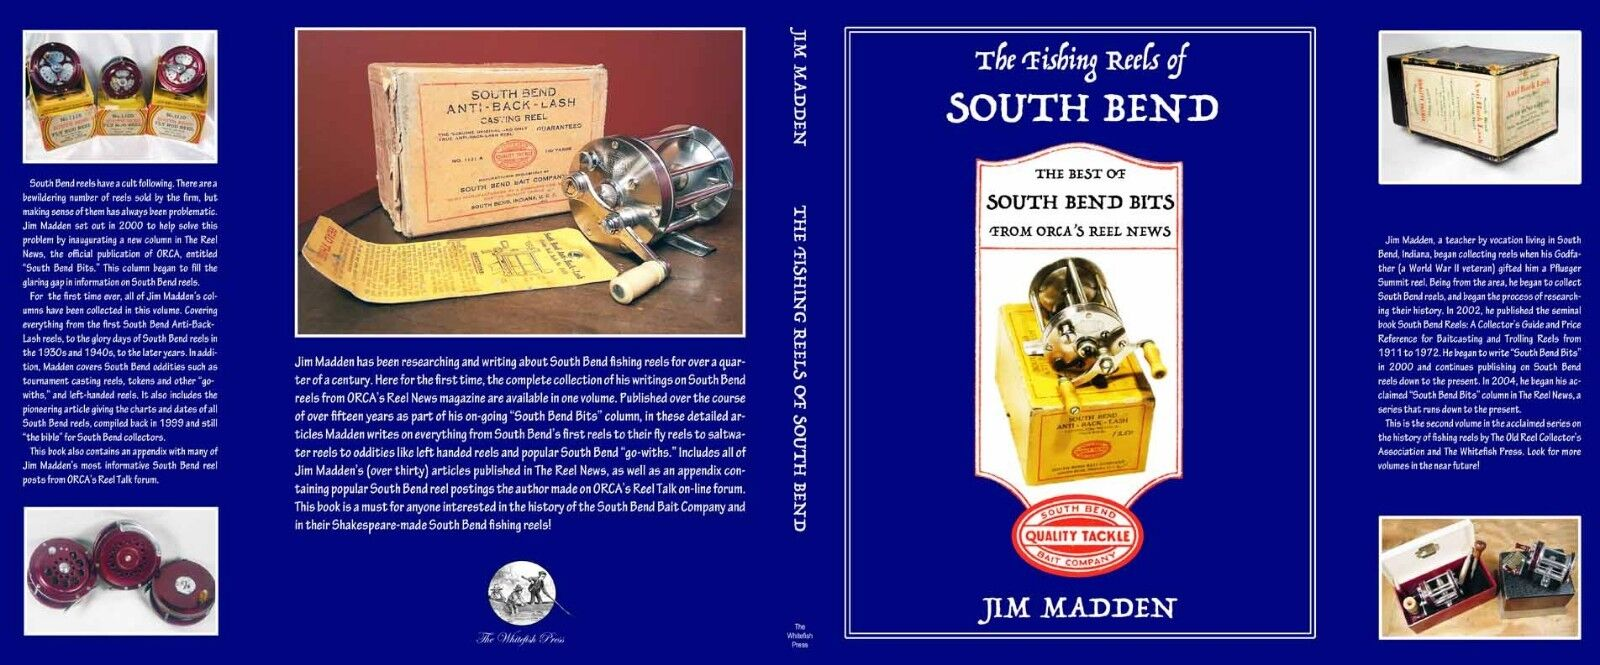 The Fishing Reels of South Bend  Best of South Bend Bits - Signed Hardcover